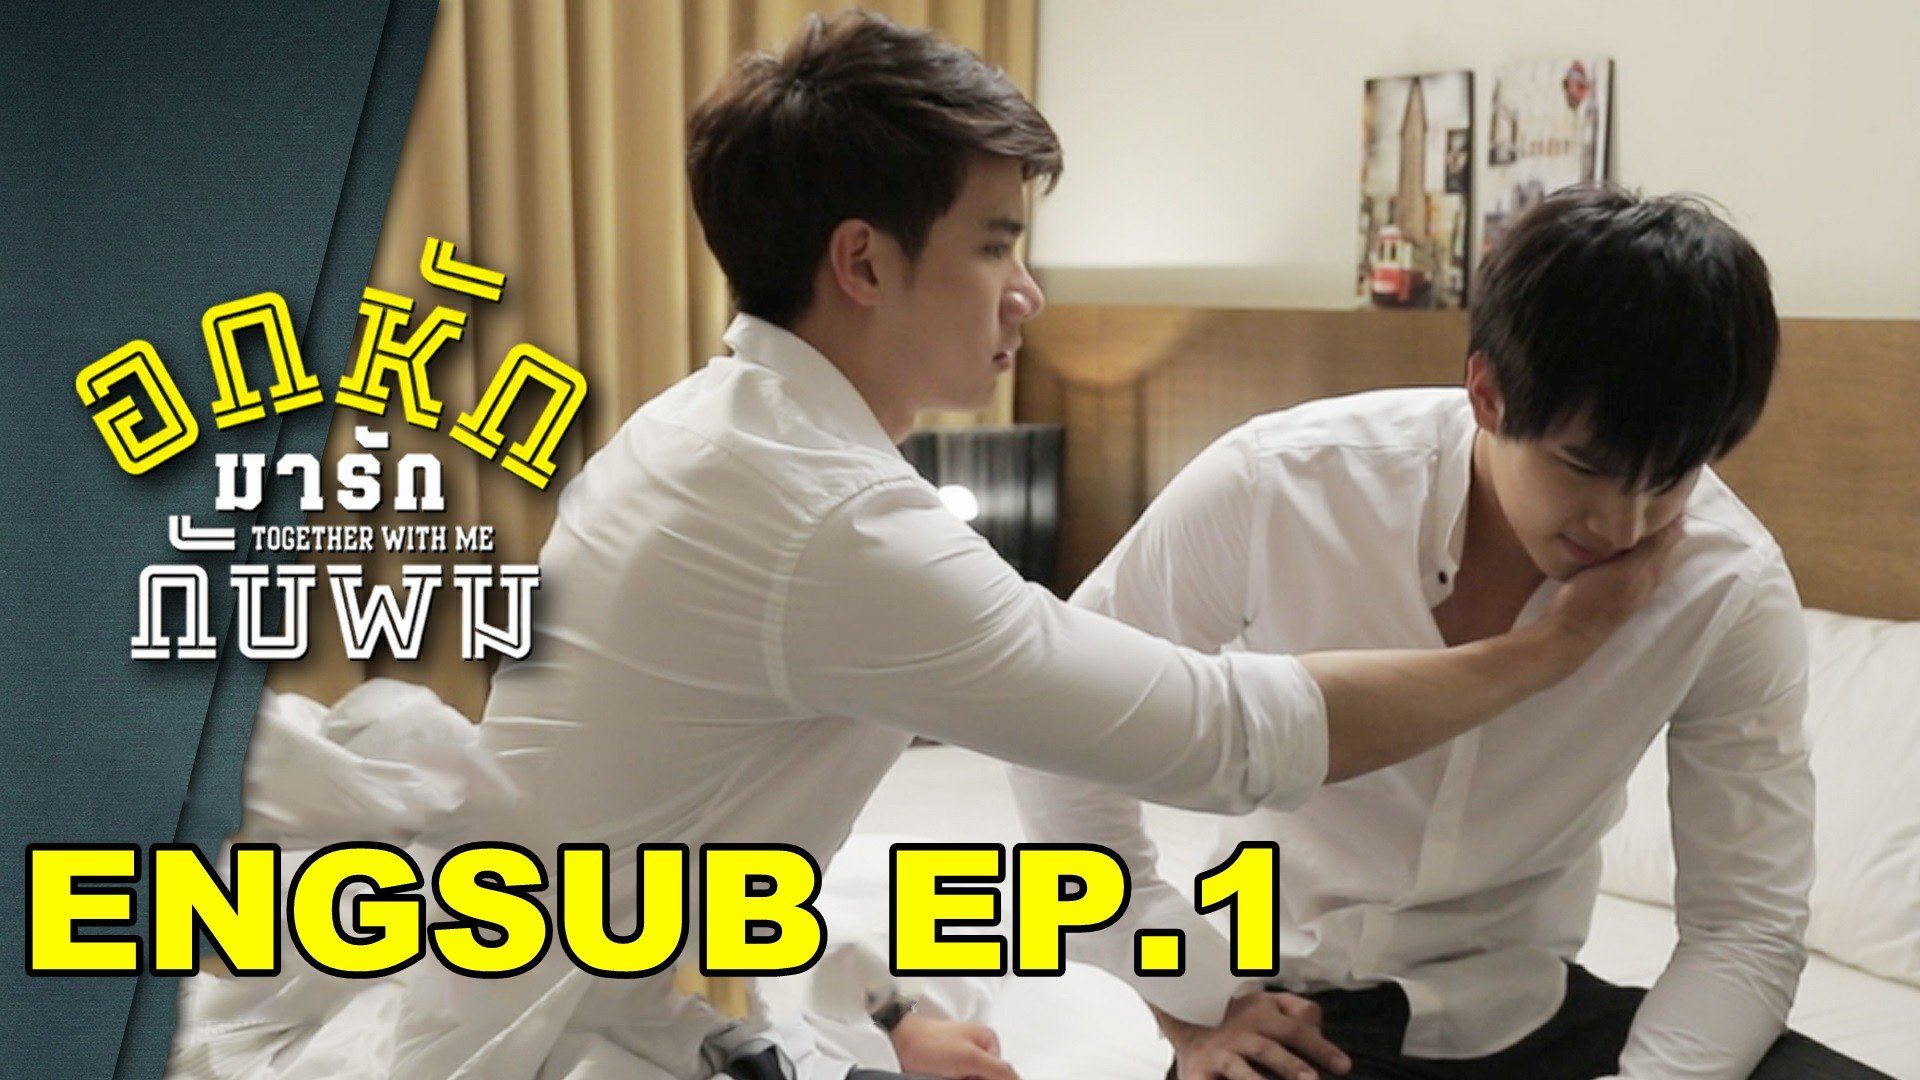 Engsub Bl Together With Me Ep 1 Official Video Dailymotion